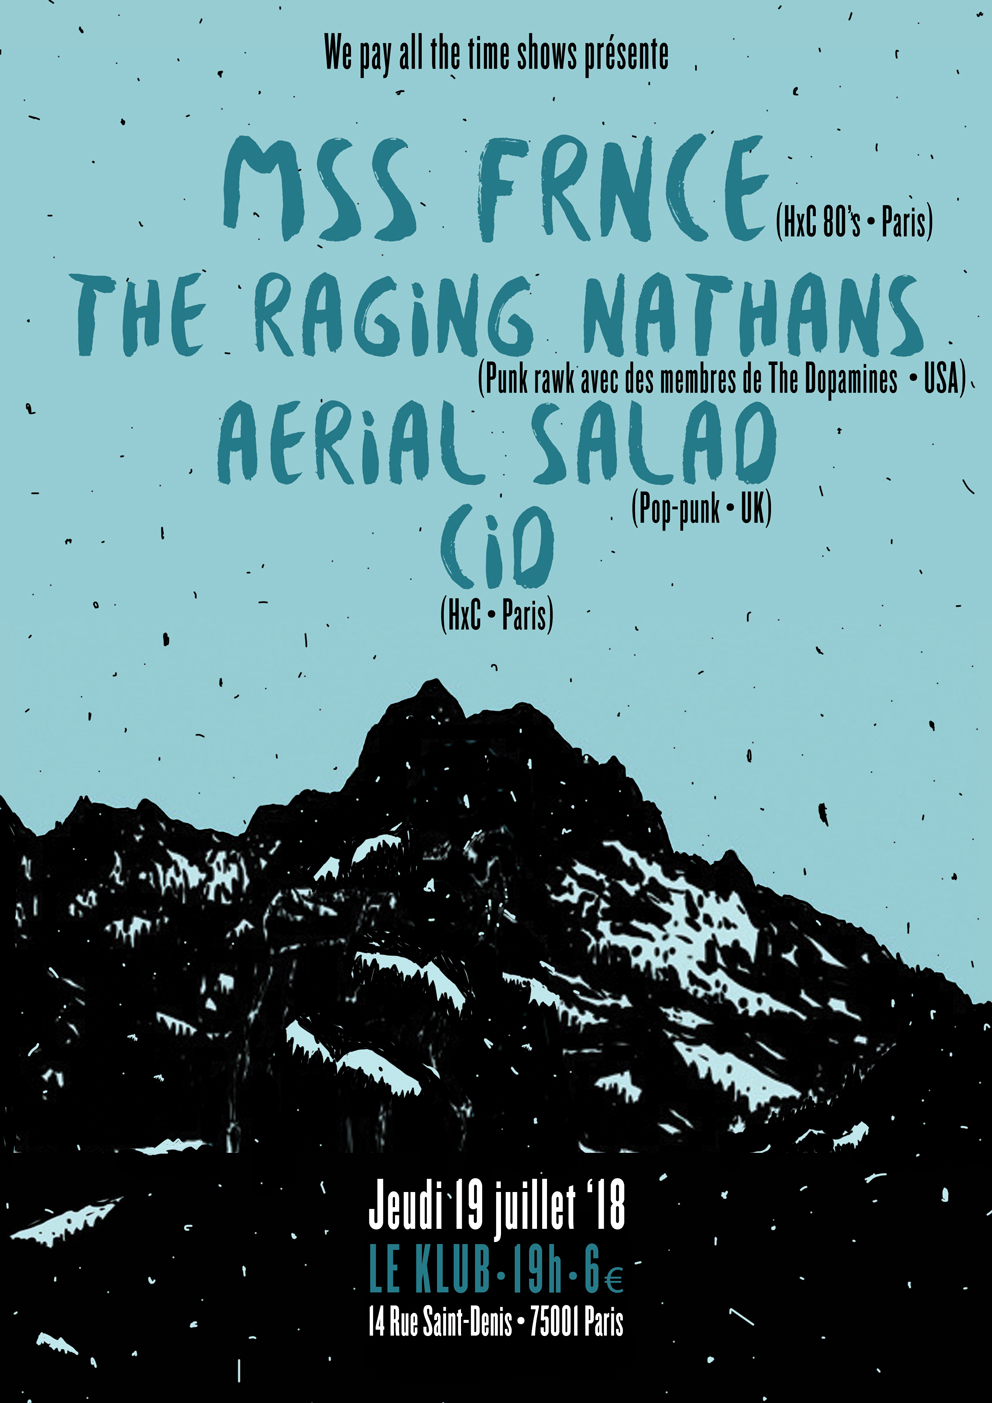 MSS FRANCE + THE RAGING NATHANS + AERIAL SALAD + CIO ■ 17.07